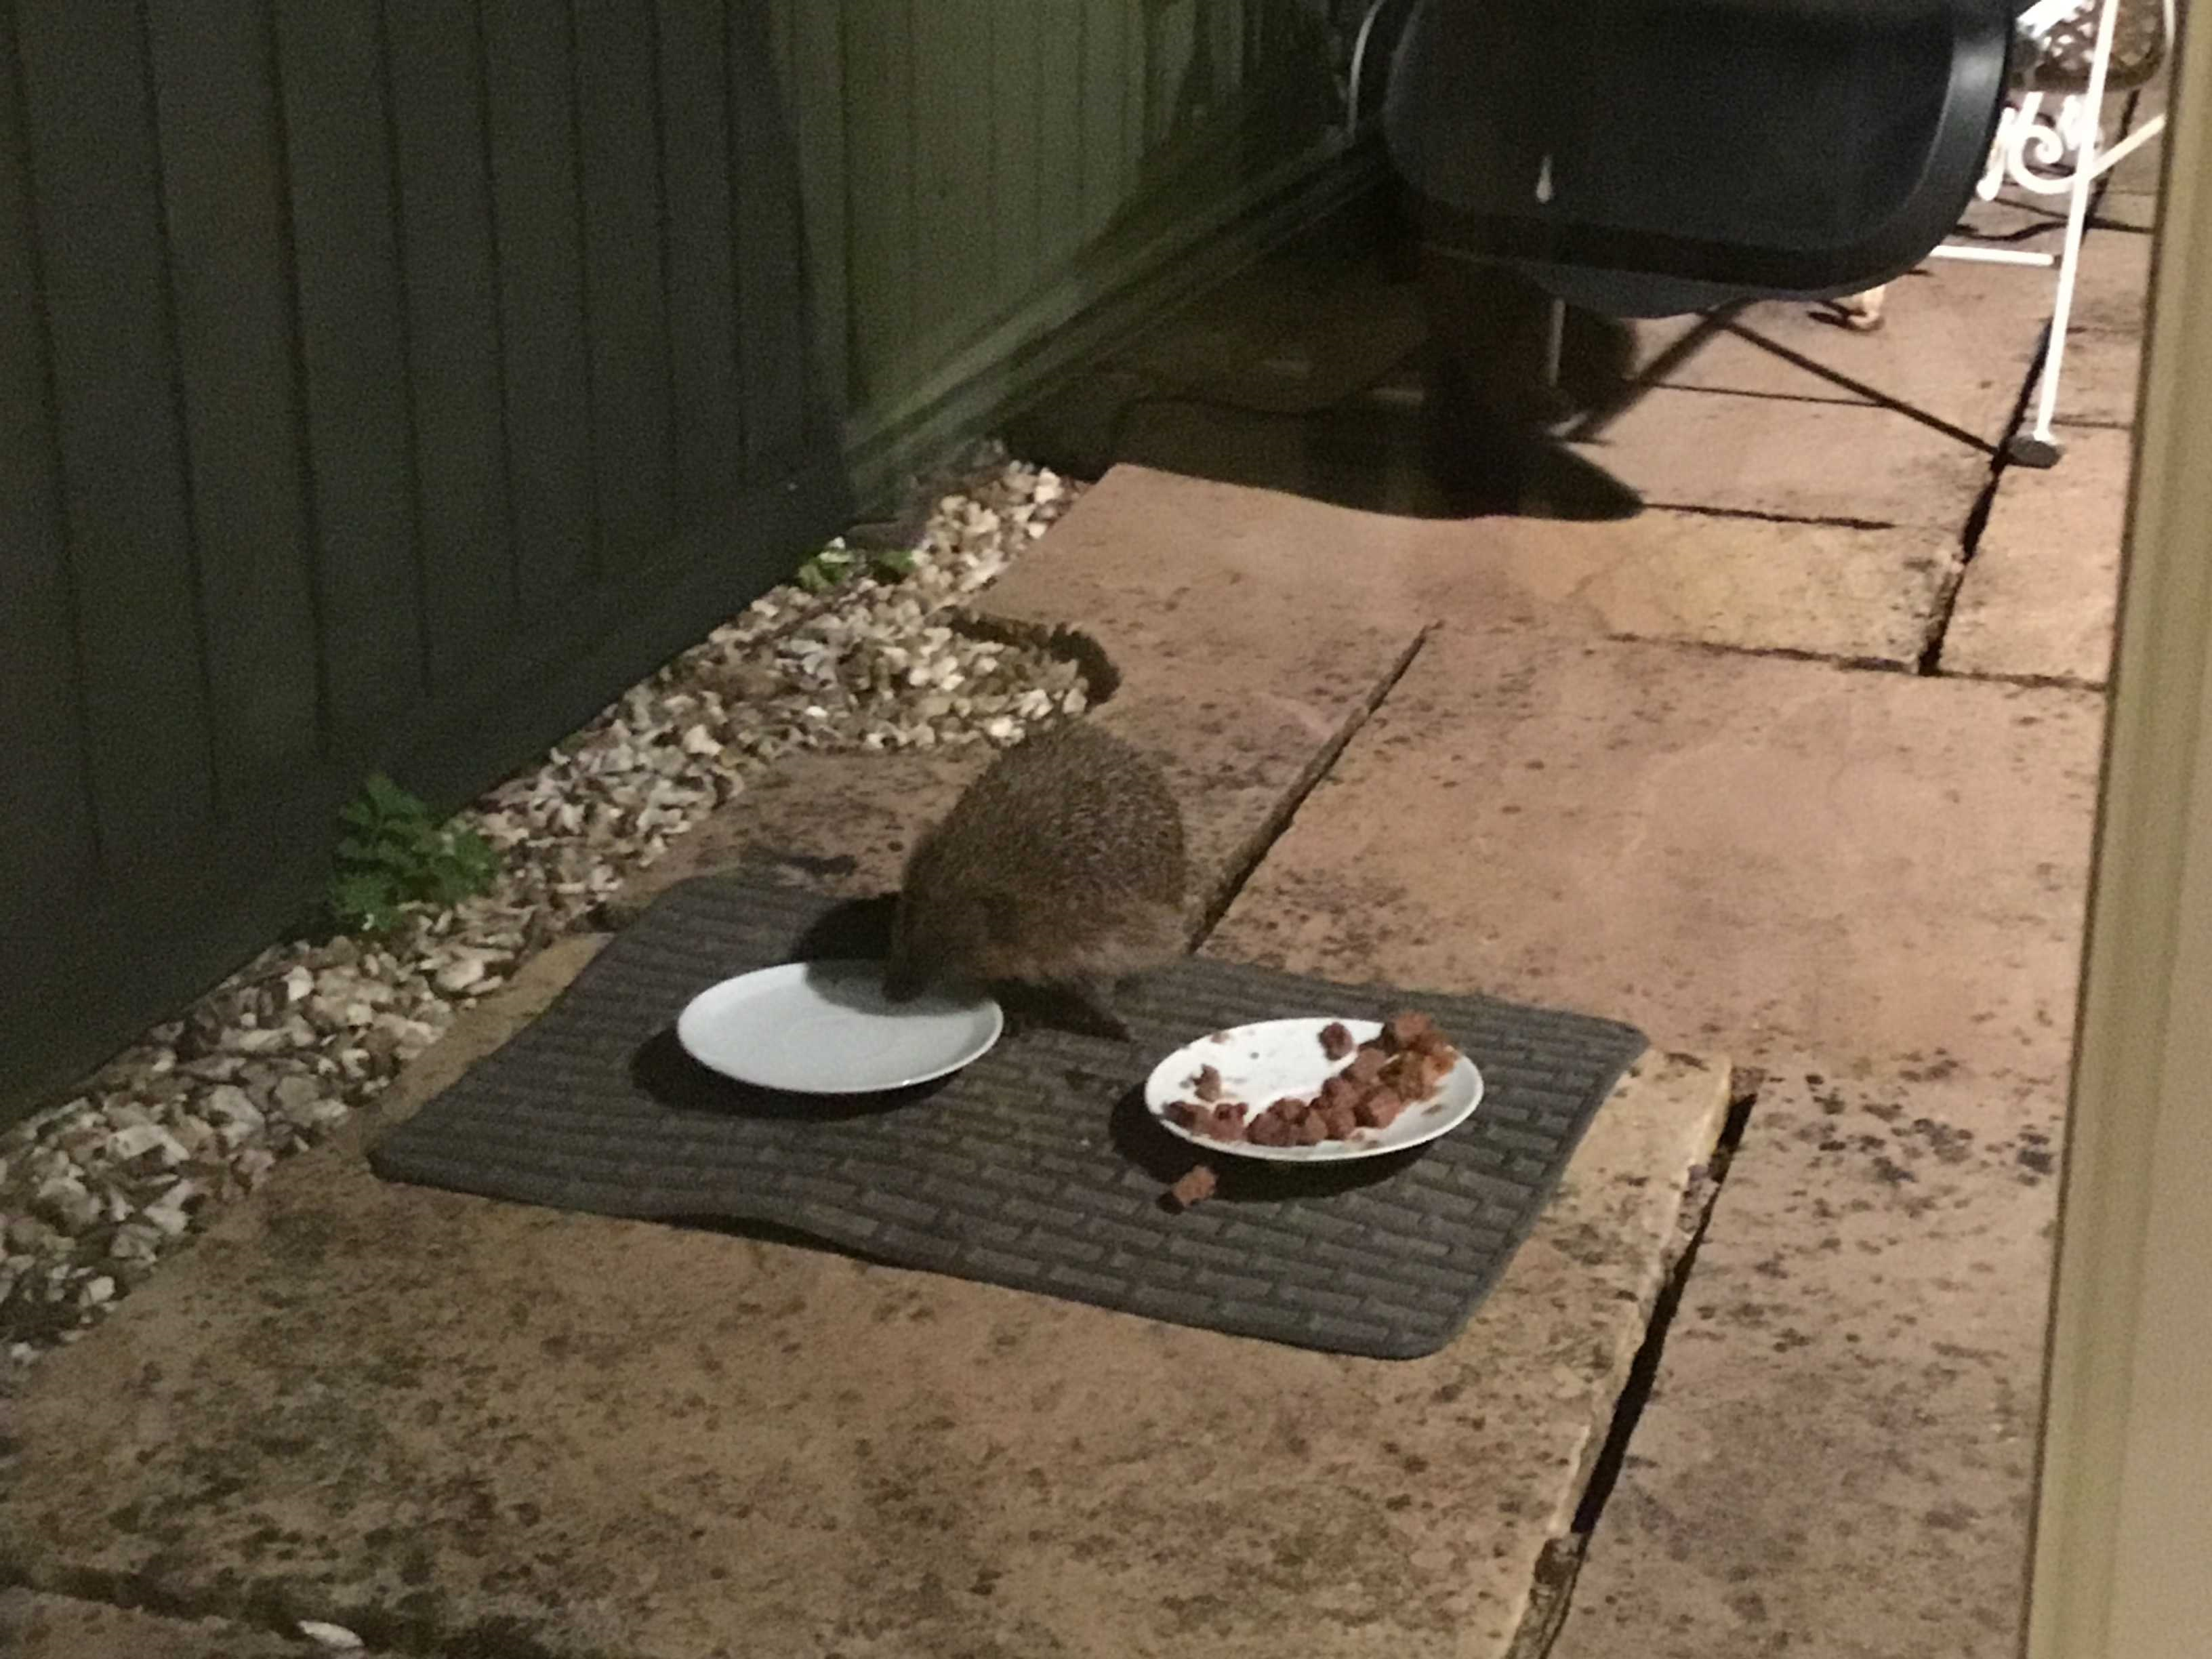 Picture of hedgehog feeding in garden from a plate of chocolates